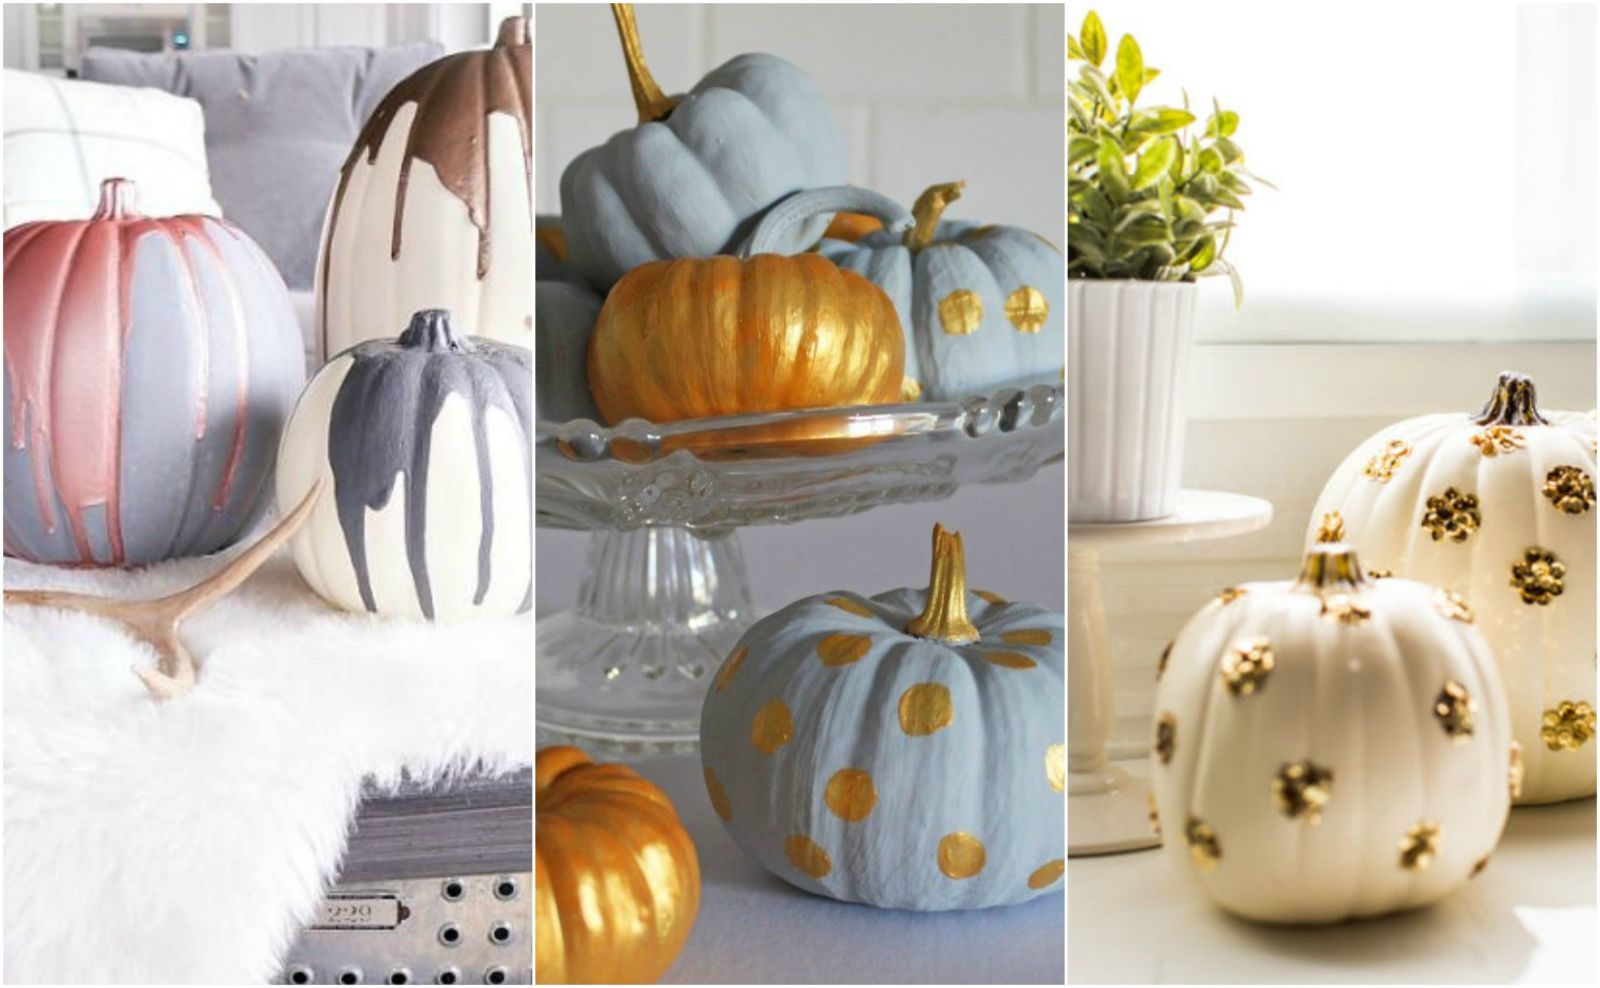 easy nocarve pumpkin ideas pumpkin decorating pumpkin ideas